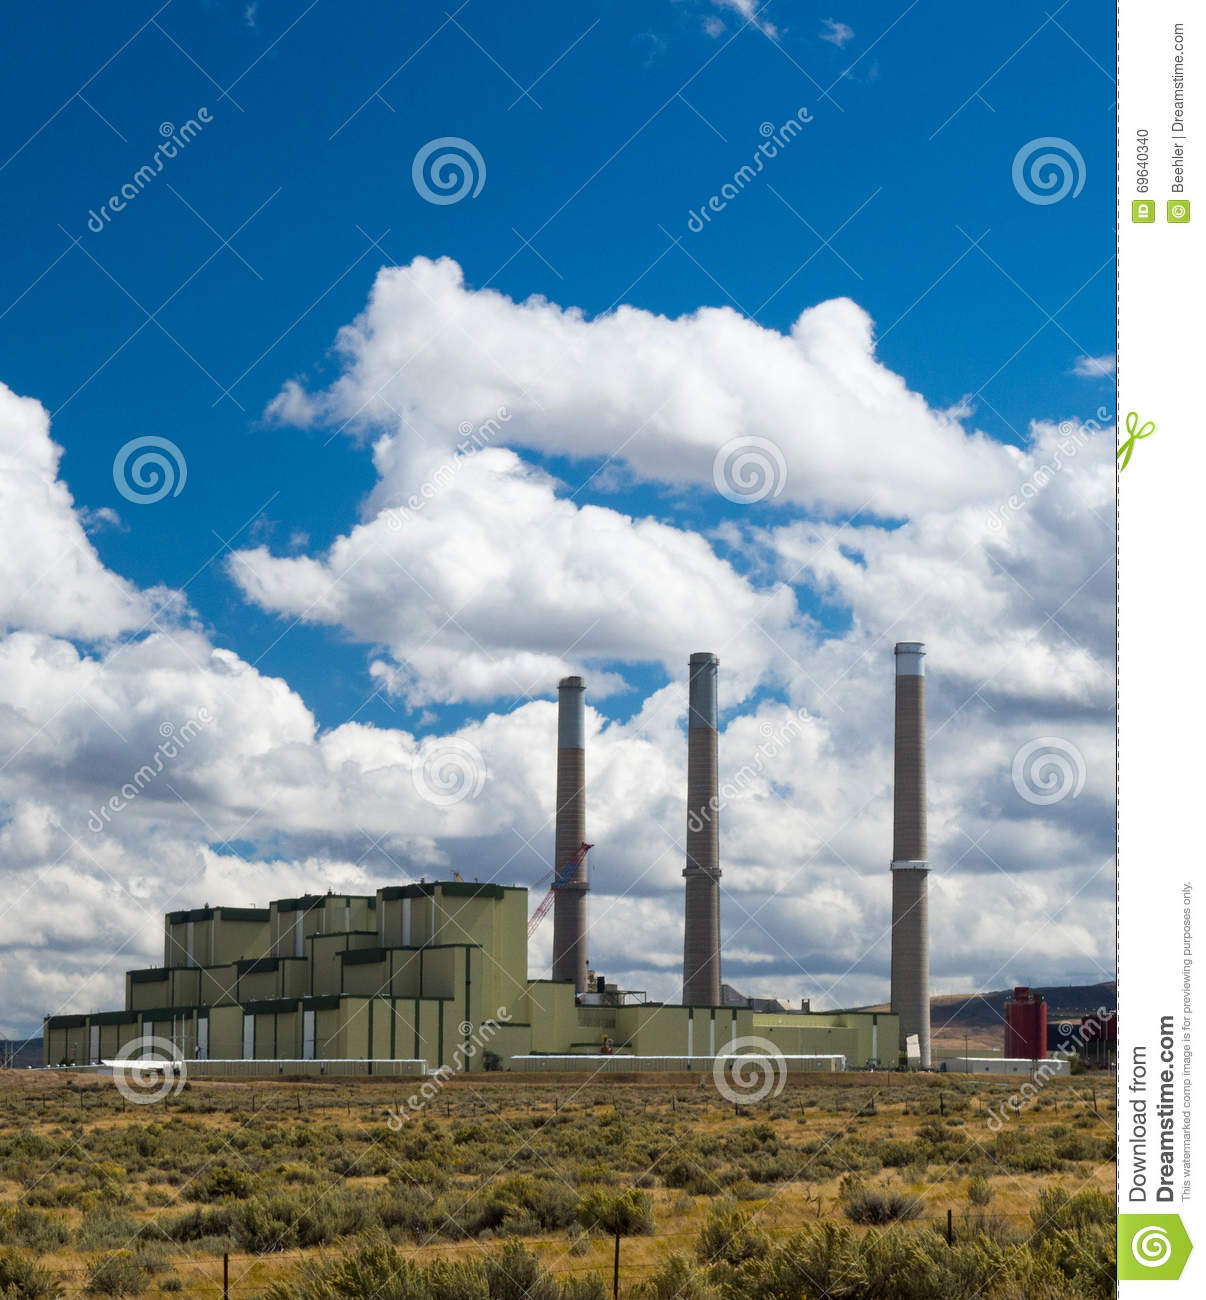 Western US Coal Fired Power Plant